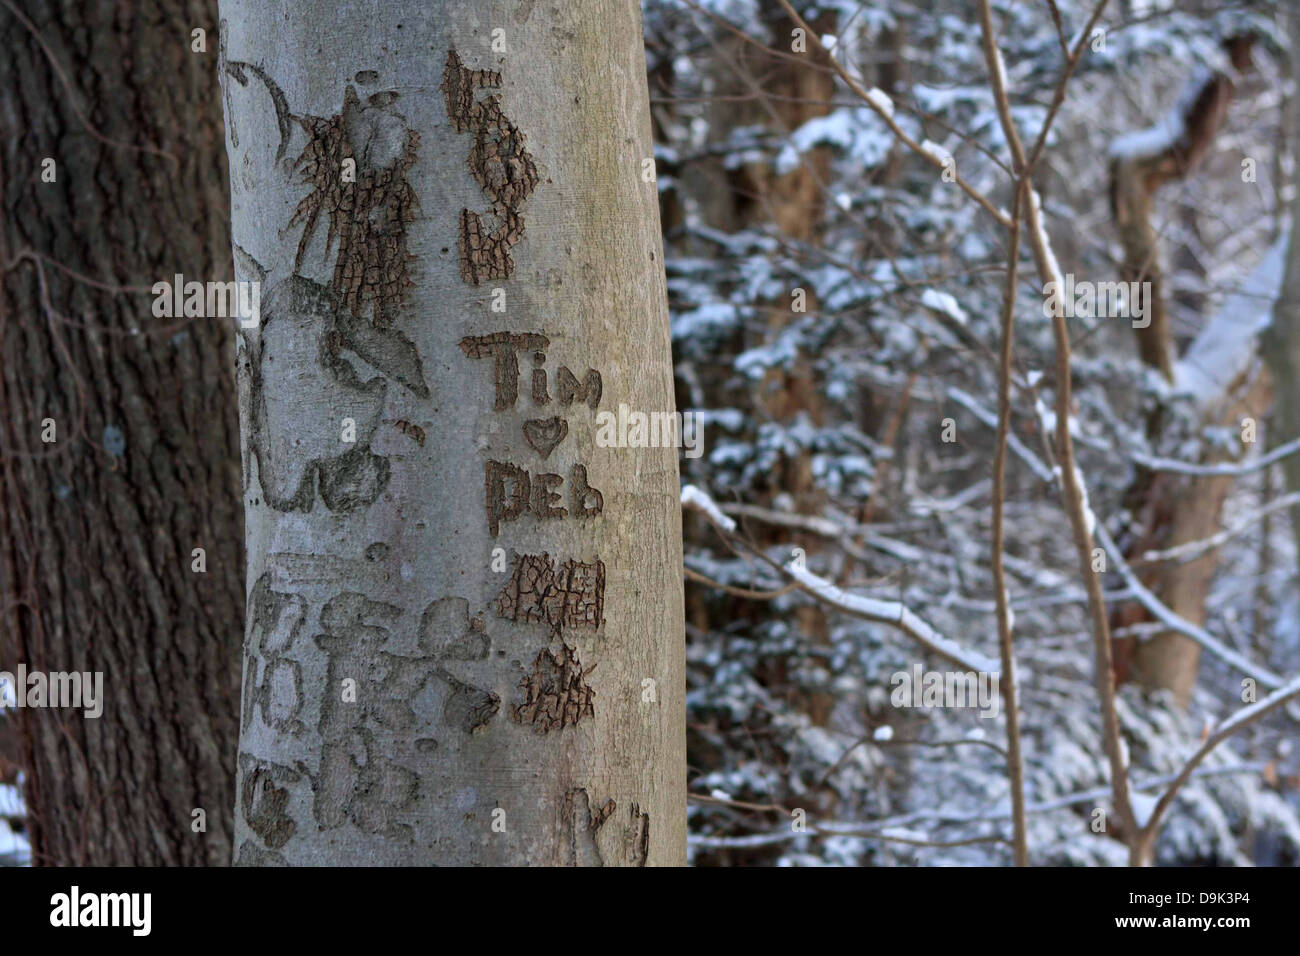 tree trunk bark names carve carved  love old Tim Deb initials heart snow winter branch branches - Stock Image